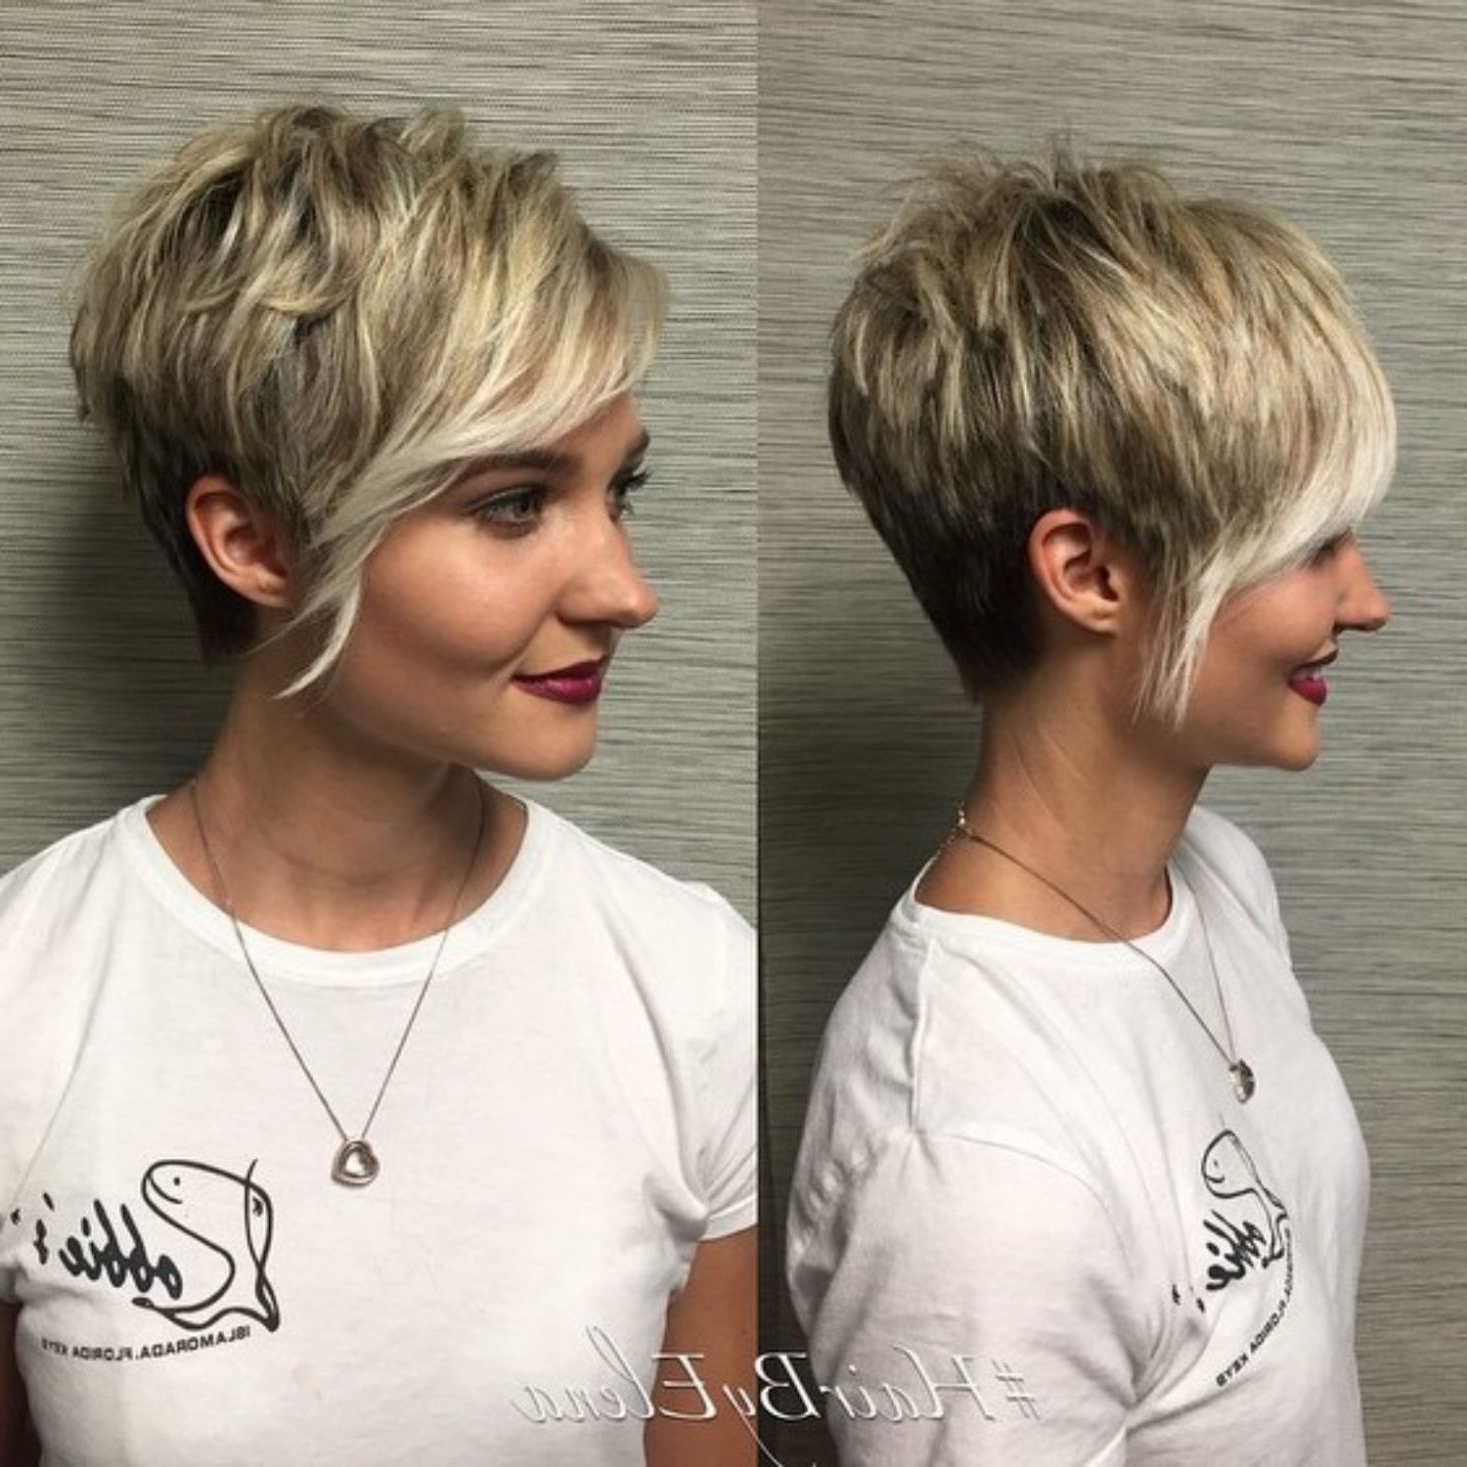 60 Cute Short Pixie Haircuts – Femininity And Practicality In 2018 Within Choppy Blonde Pixie Hairstyles With Long Side Bangs (View 2 of 20)